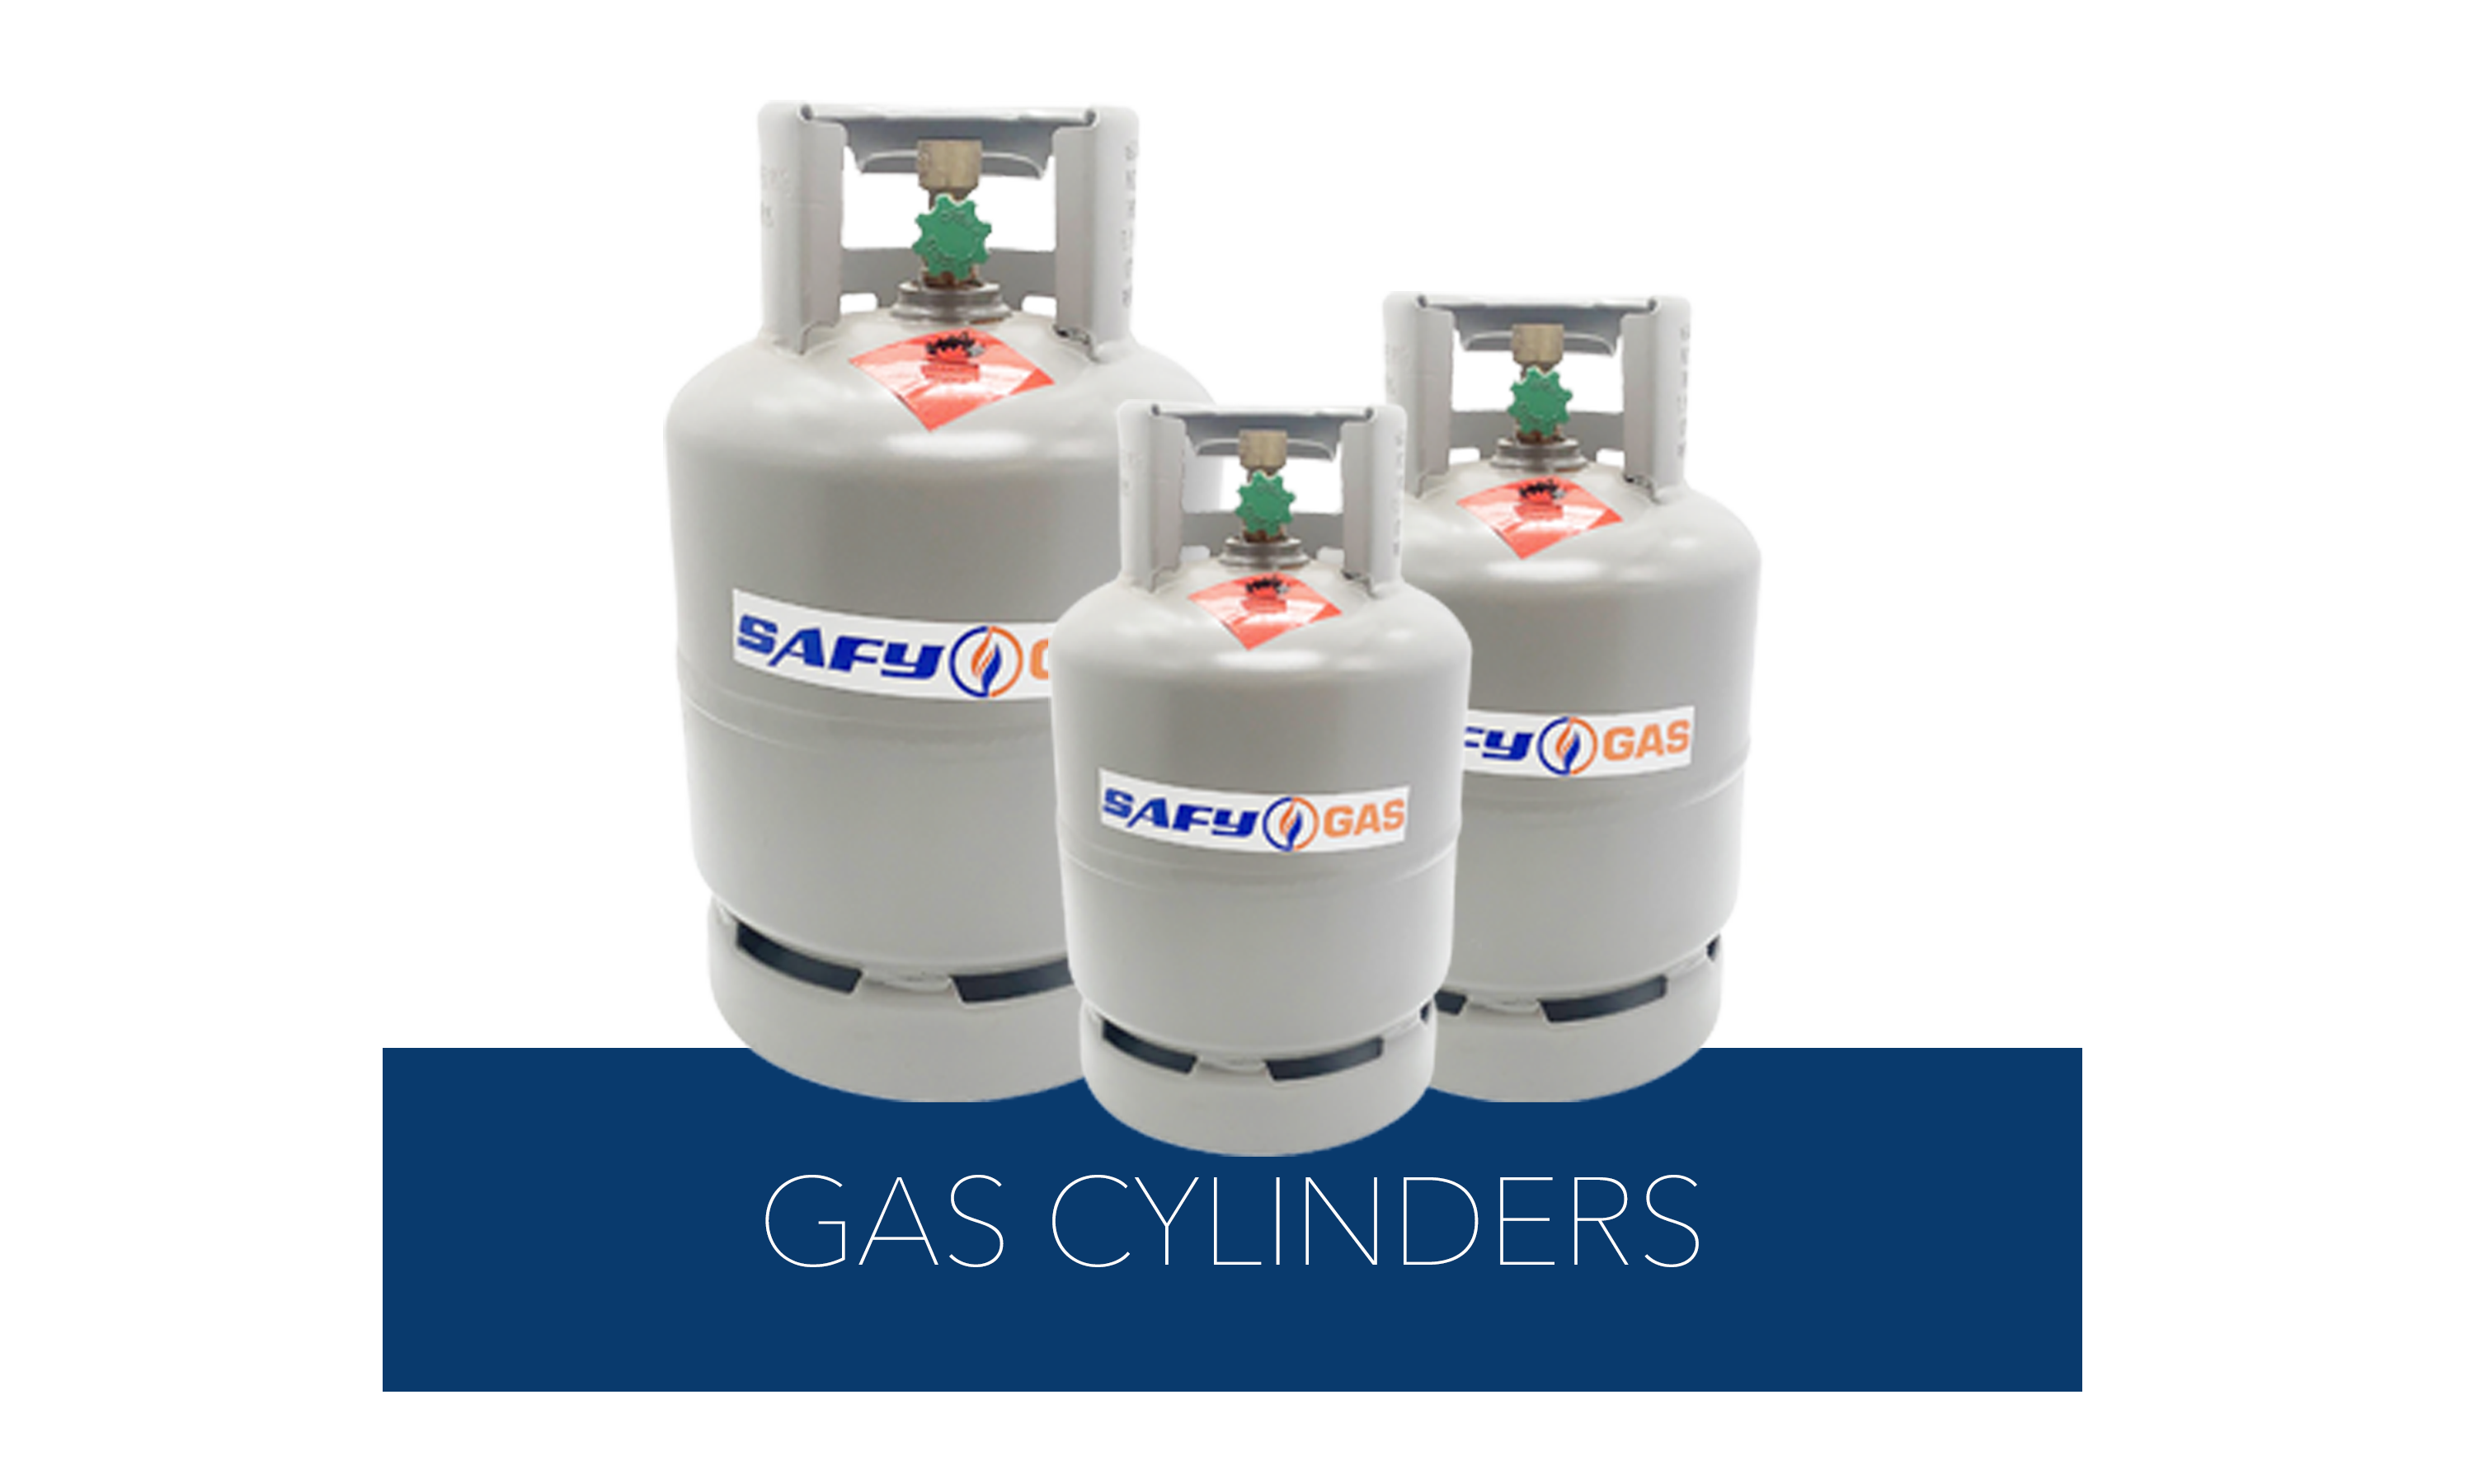 (GAS CYLINDERS) Button